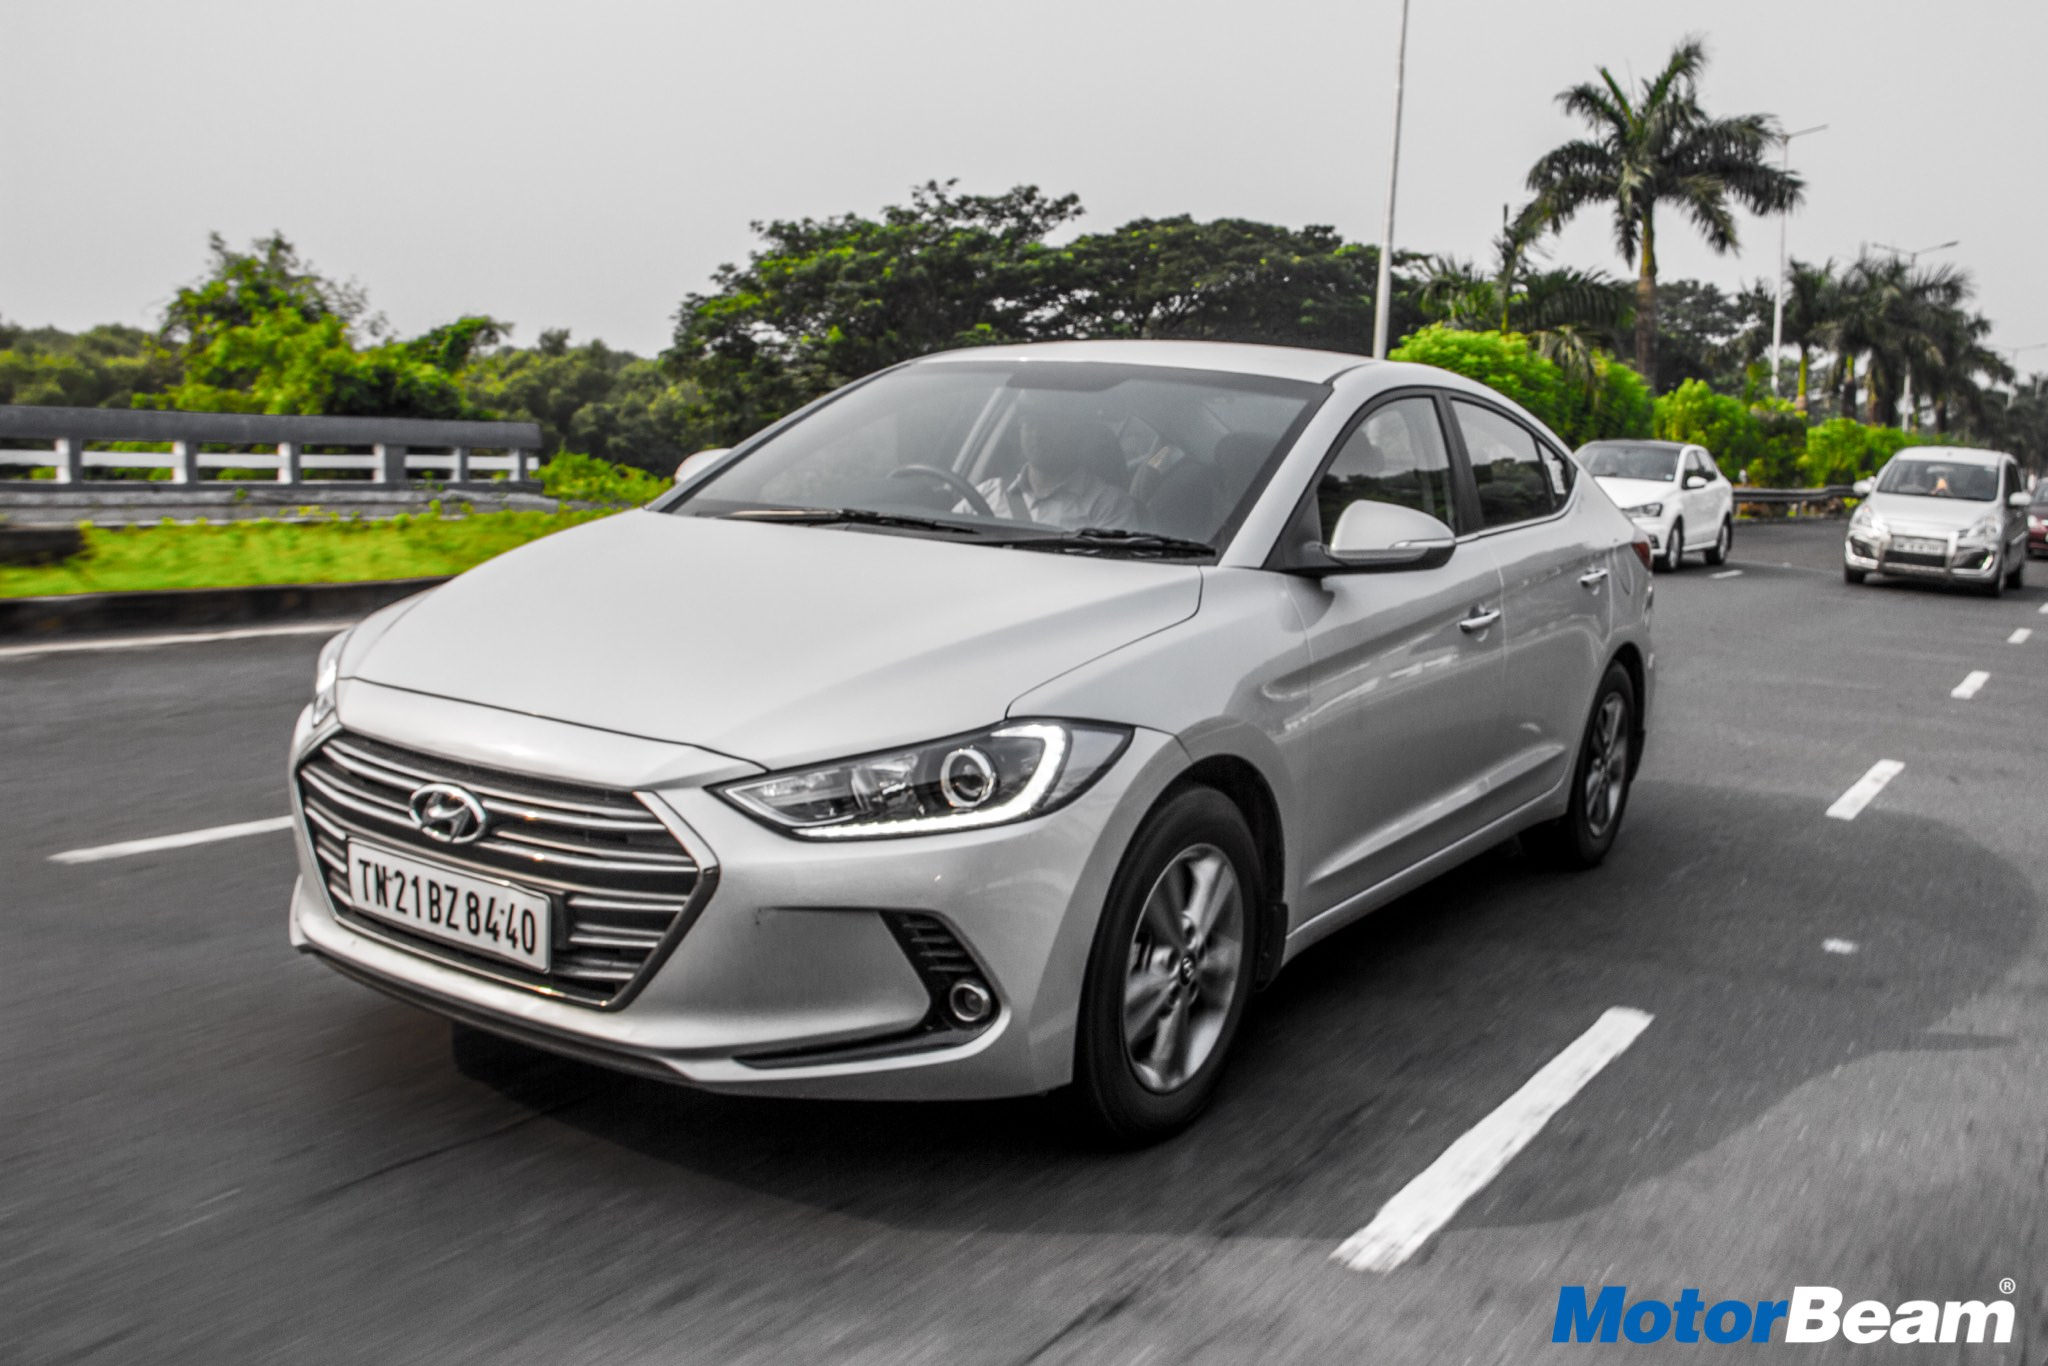 Hyundai Elantra Petrol Long Term Review